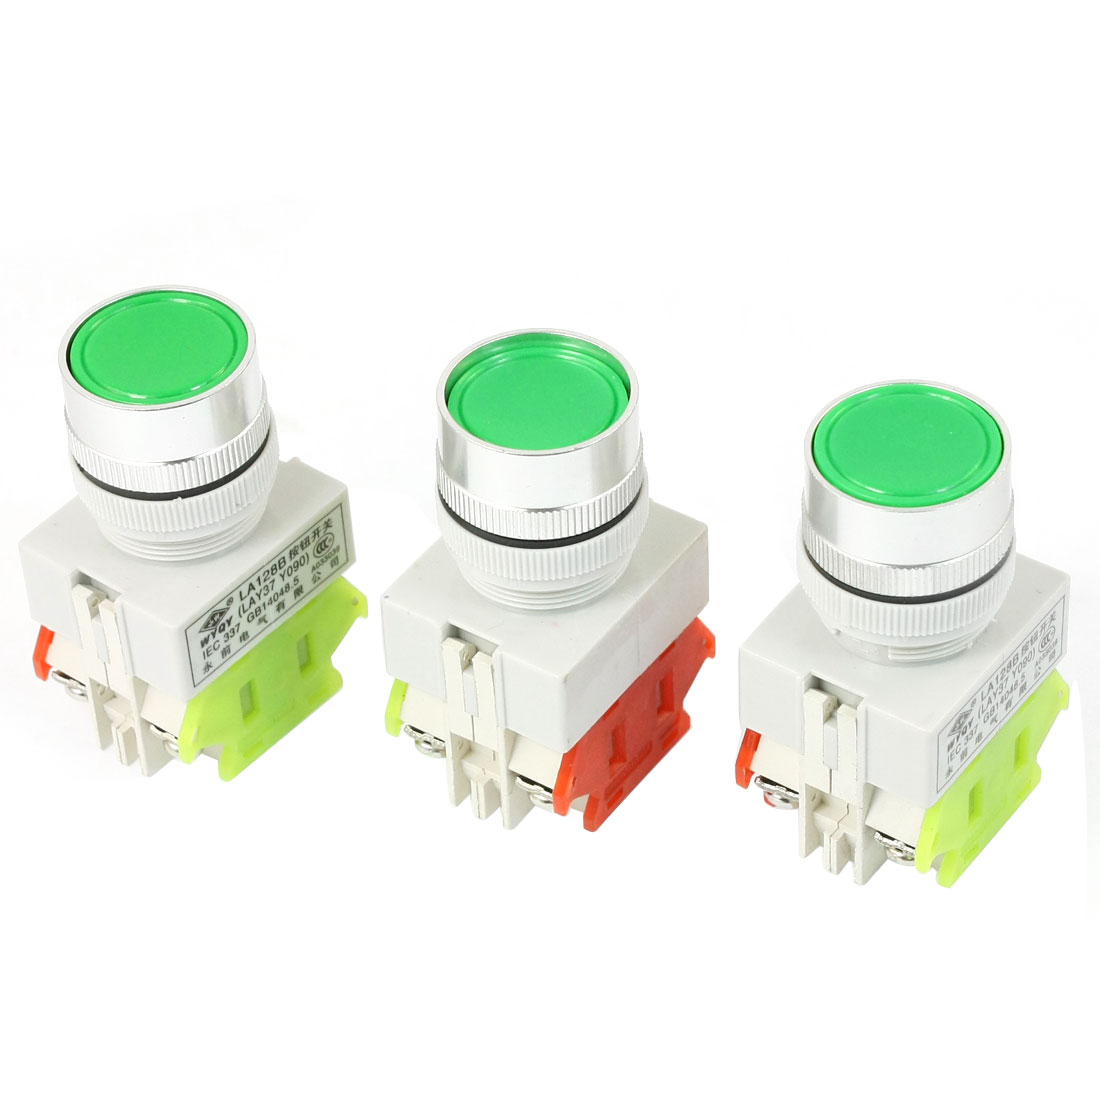 3 Pcs Ui 660V Ith 10A 24mm Thread Panel Mounting DPST 1NO 1NC 4 Screw Terminals Latching Push Button Switch